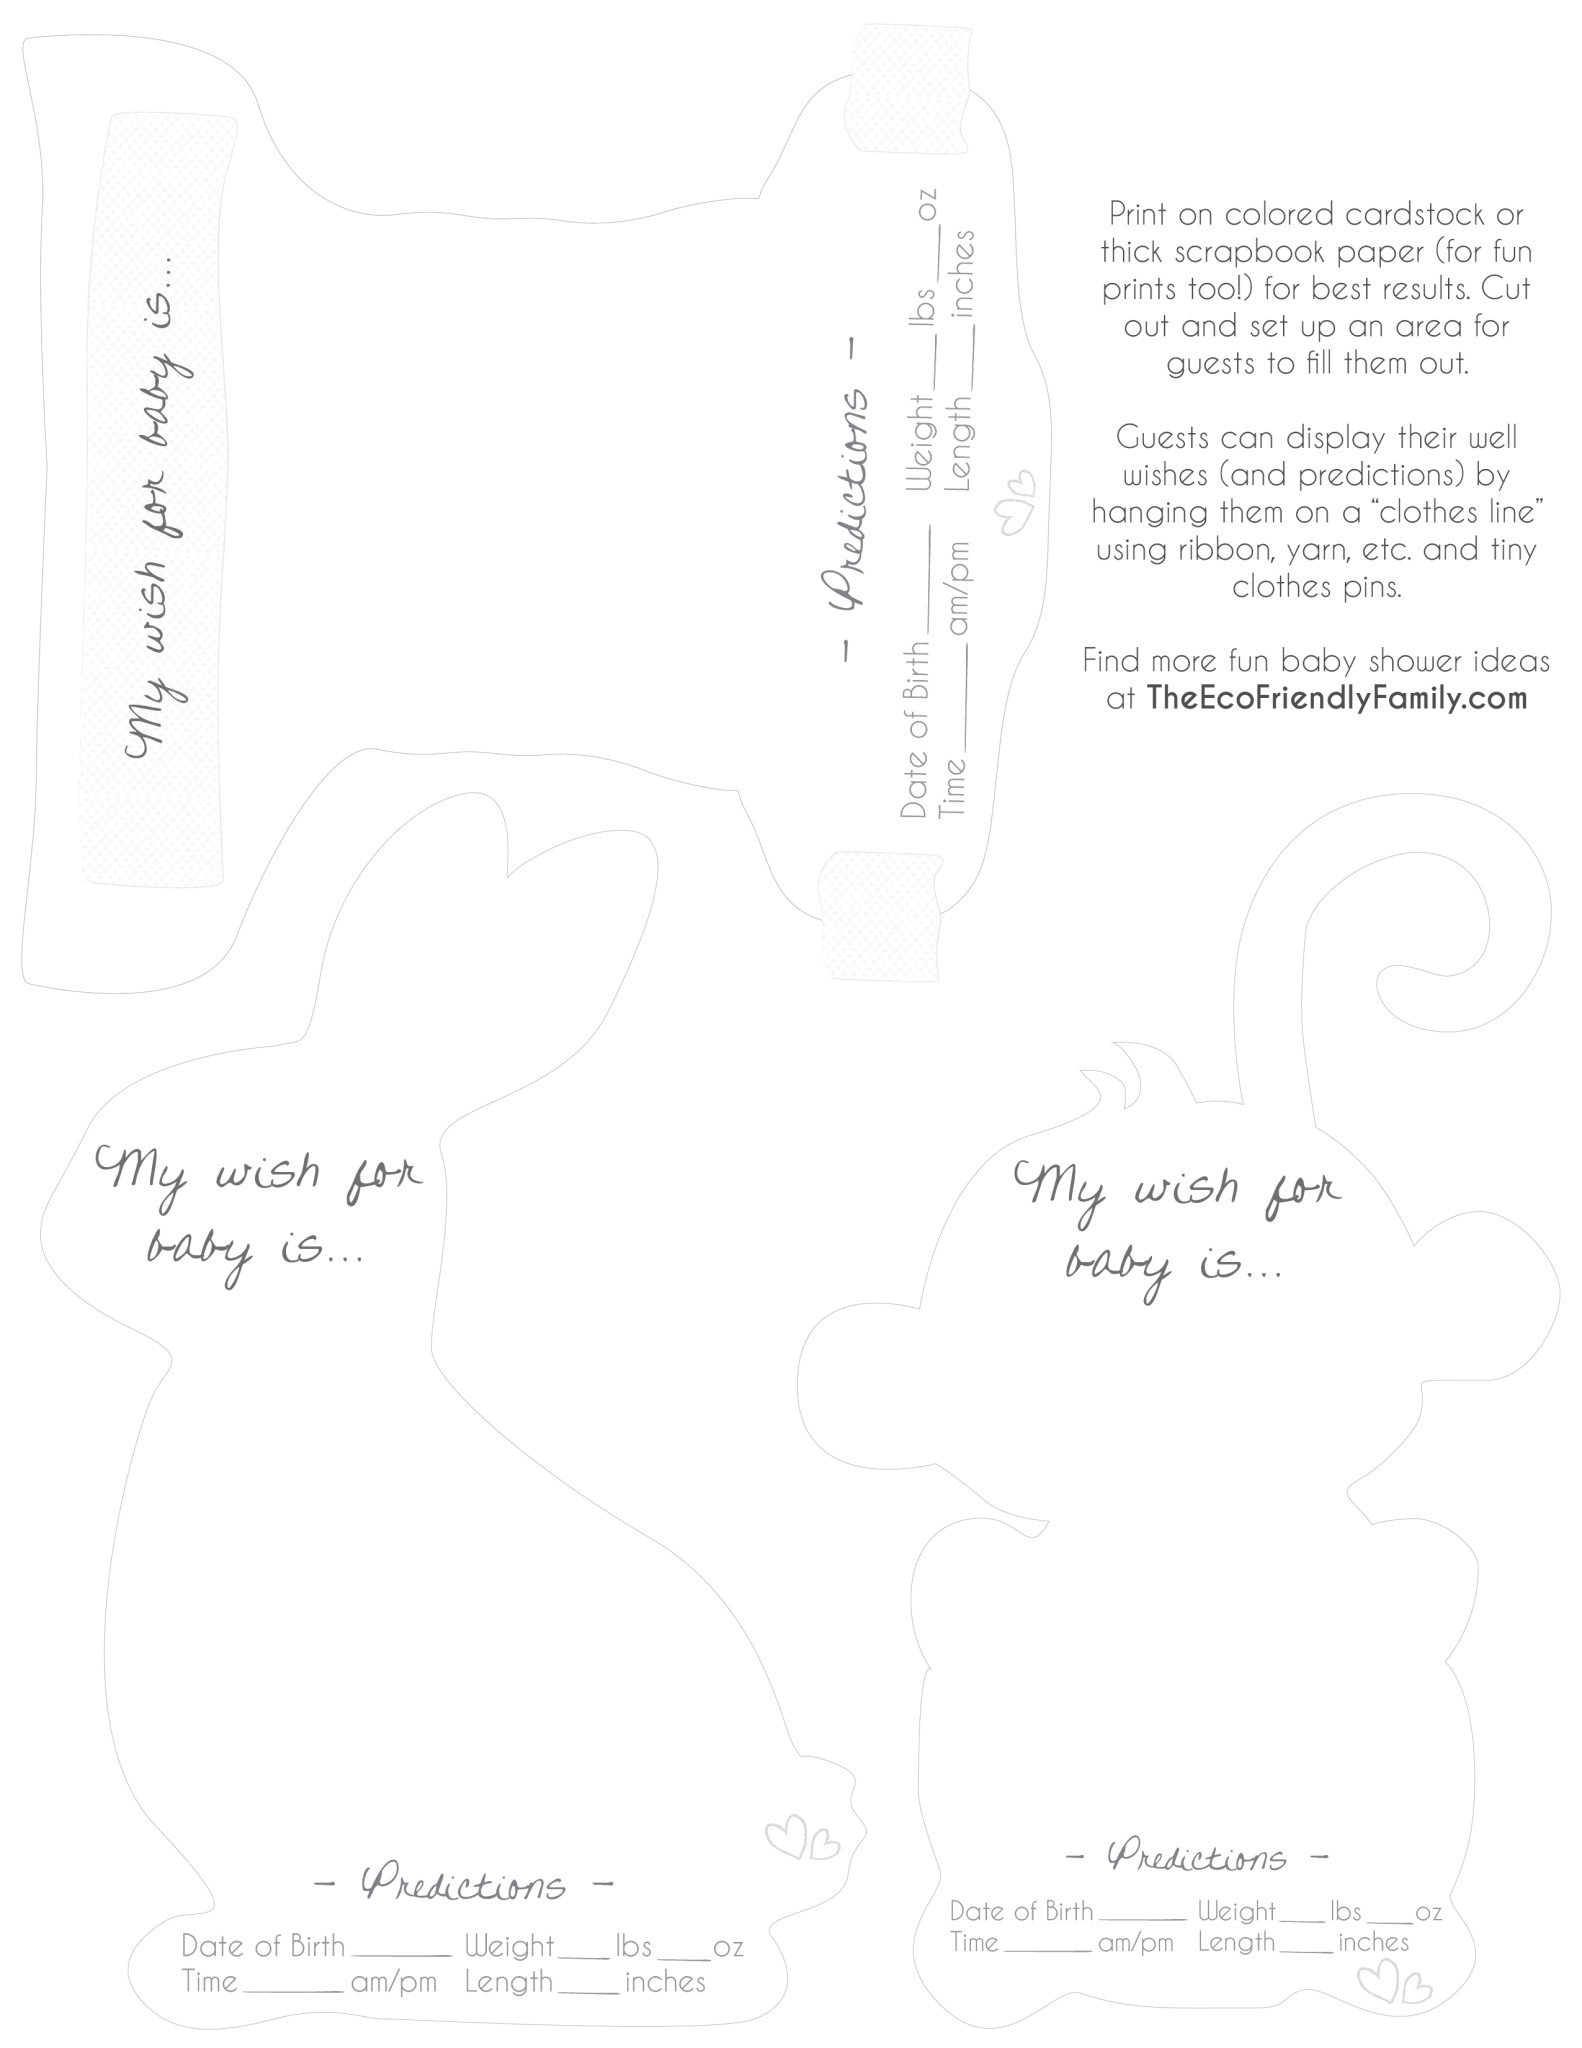 Grande Print This Template Pdf File Monkey Are Onquality Card If You Have Trouble Accessing You Can Download Fresh Approach To An Eco Friendly Baby Shower baby shower Baby Shower Wishes